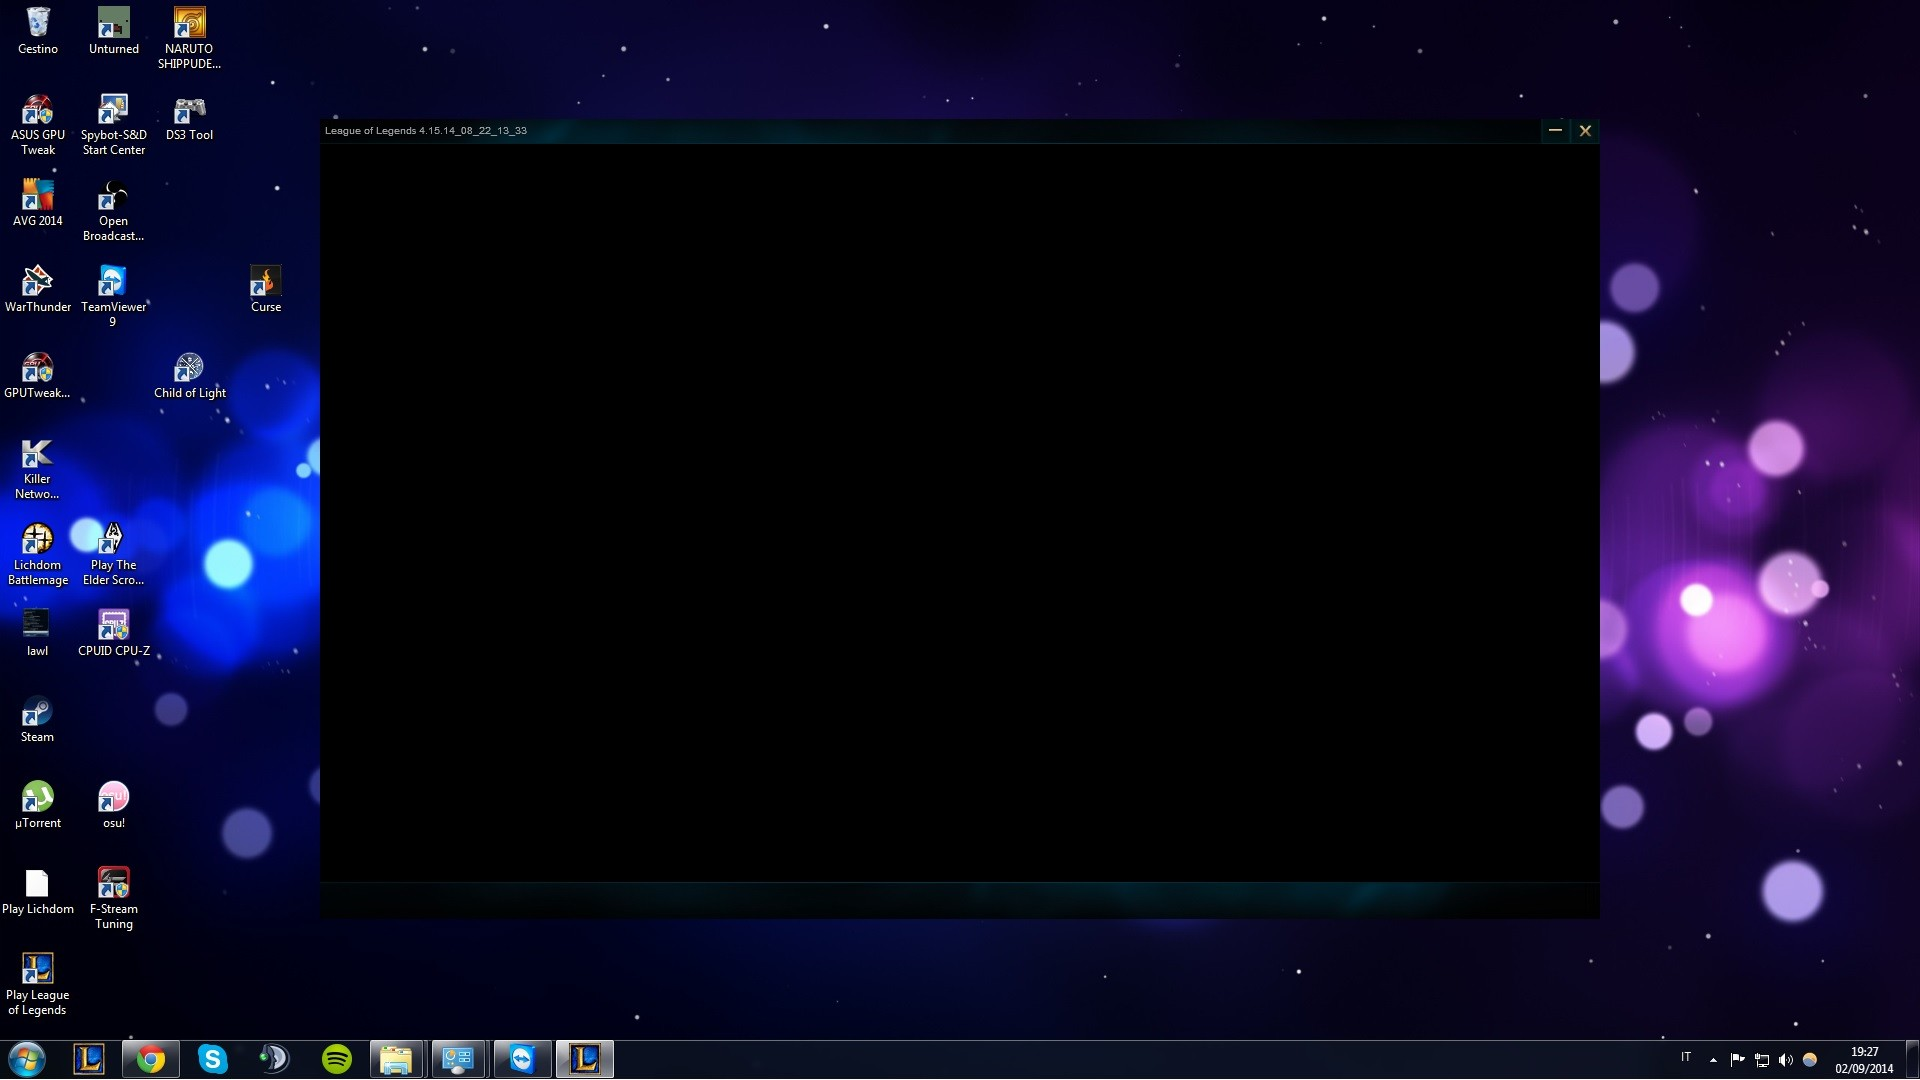 Black Screen Login League of Legends (after Launch) :: League of Legends  (LoL) Forum on MOBAFire